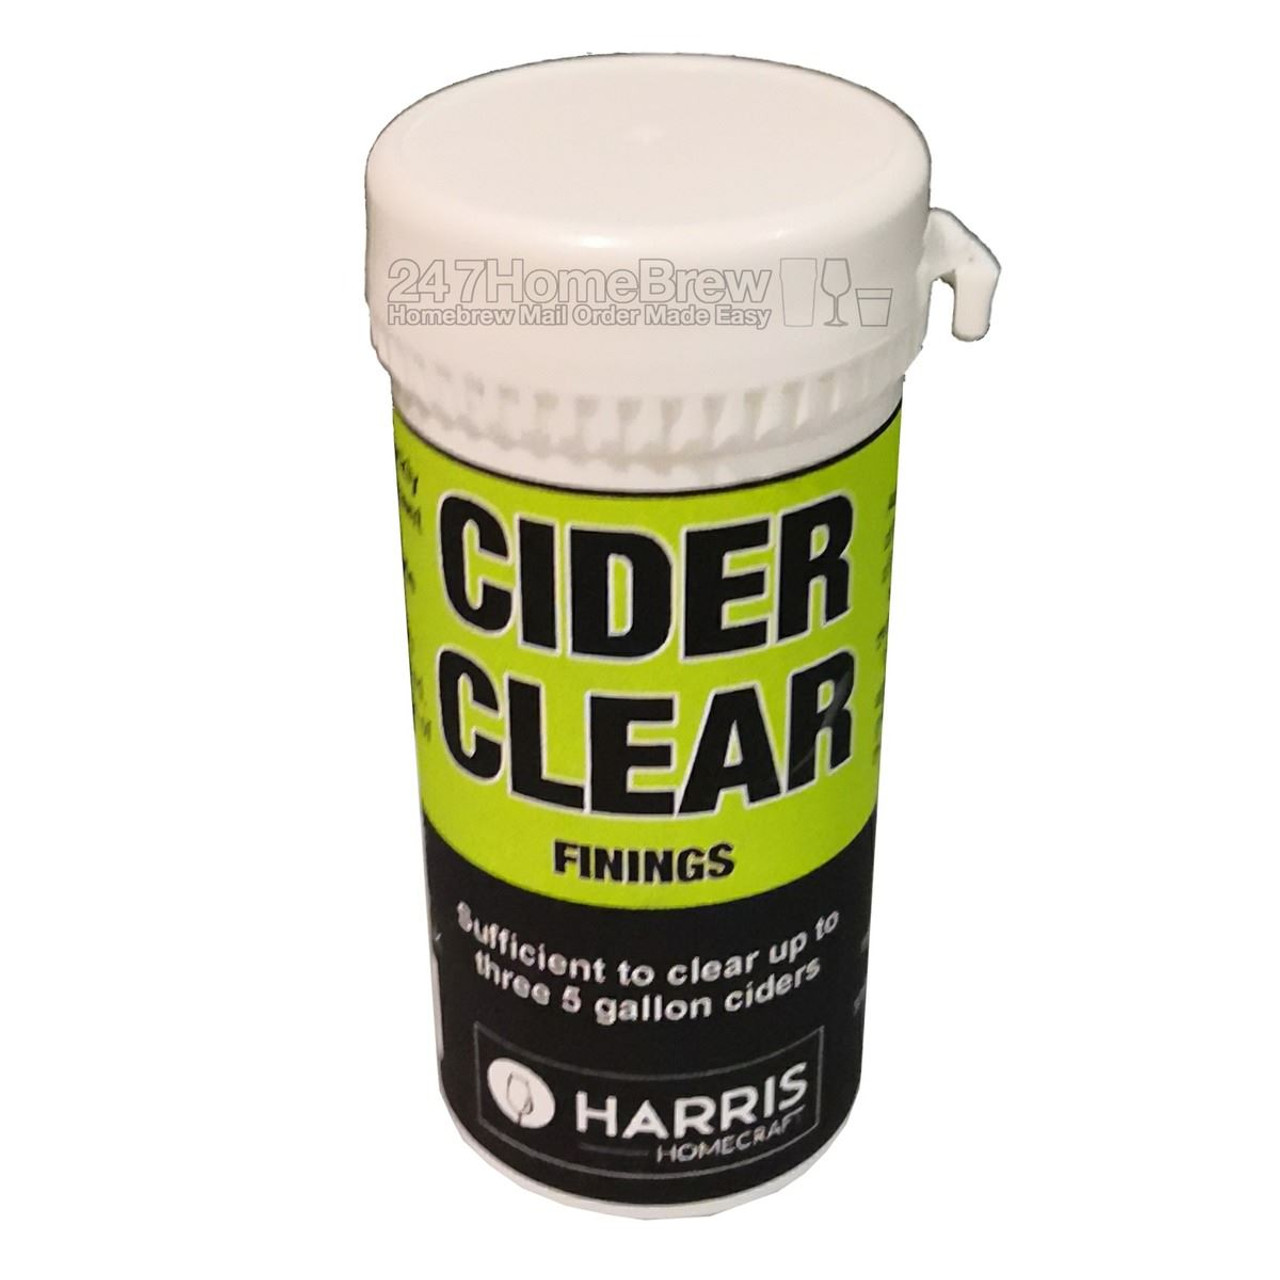 Harris Cider Clear Finings treats 69L (three 5 gallon batches)